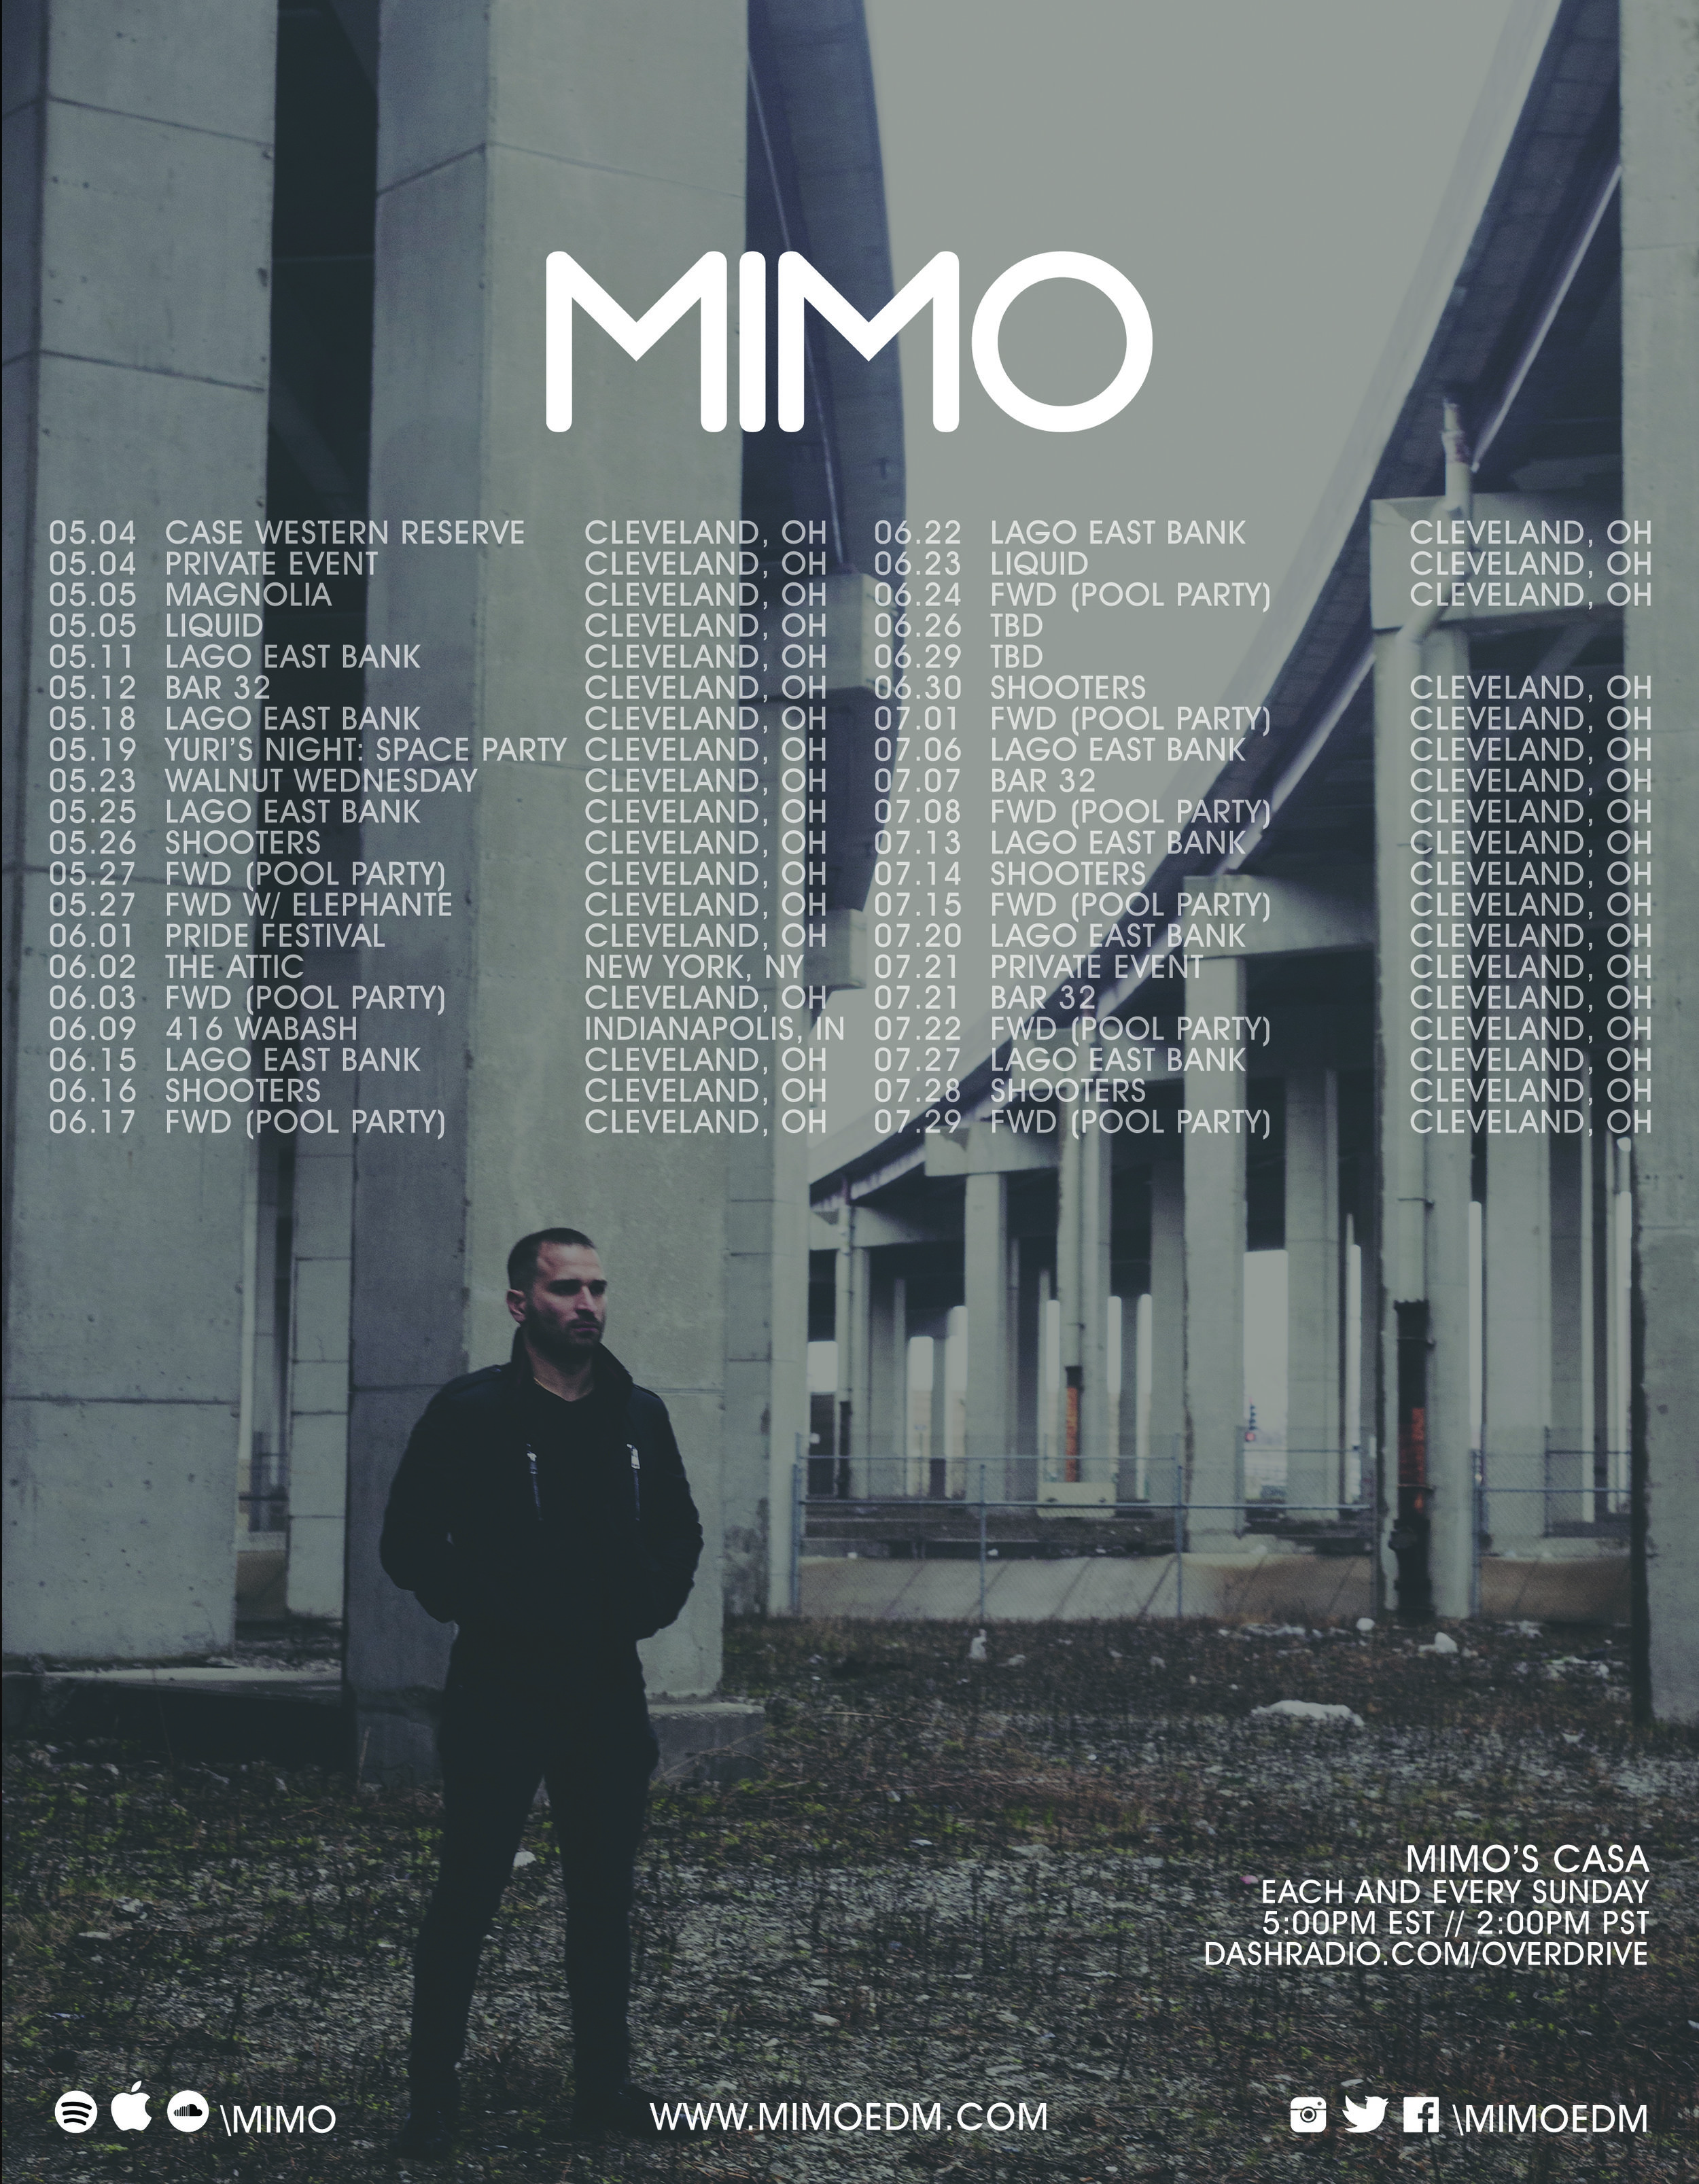 MIMO_MAY-JULY SCHEDULE 18.jpg